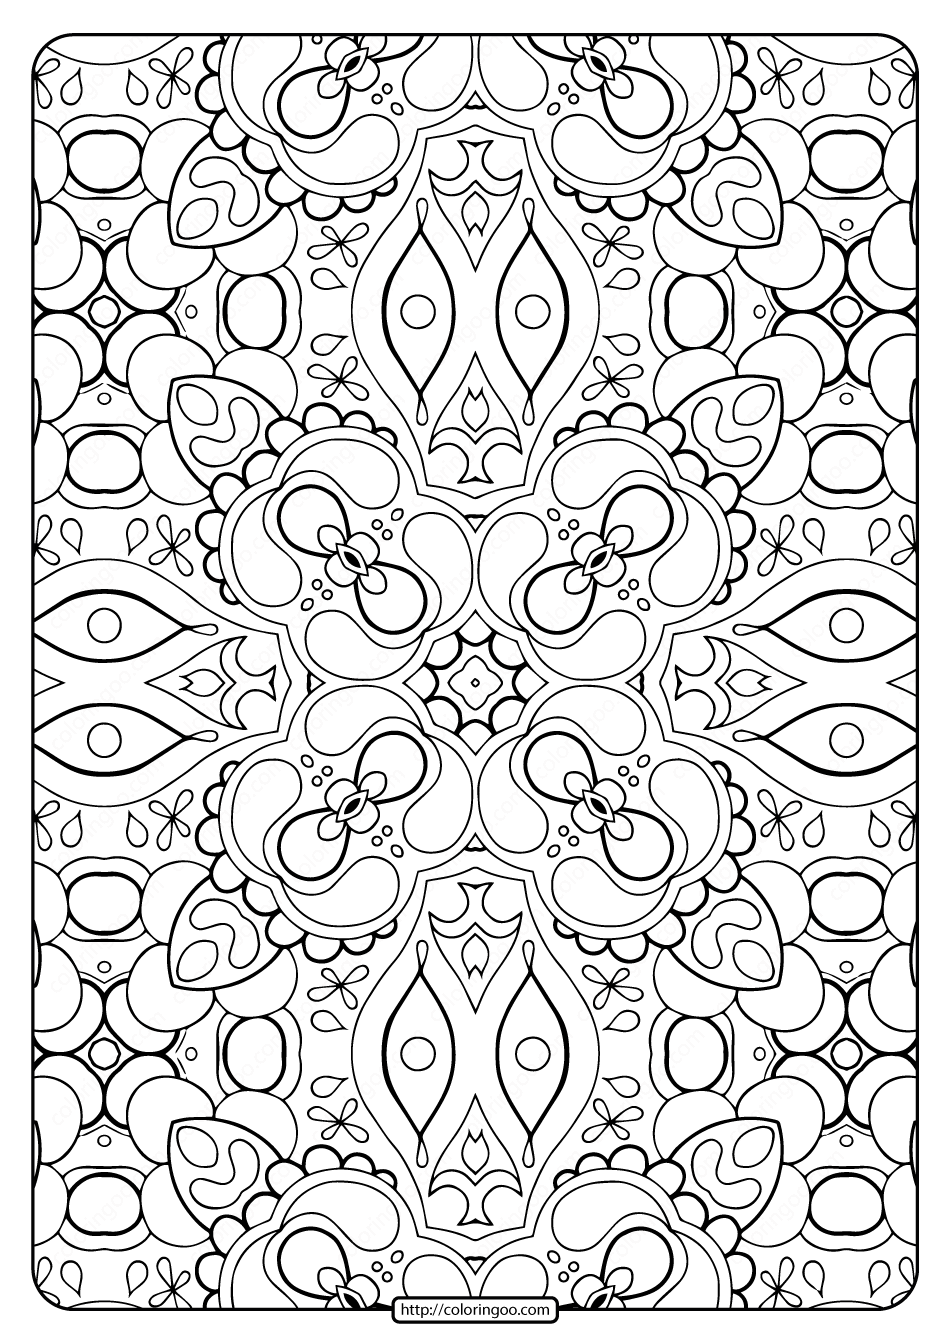 adults coloring pages 2 adult coloring pages animal coloring page printable etsy coloring pages adults